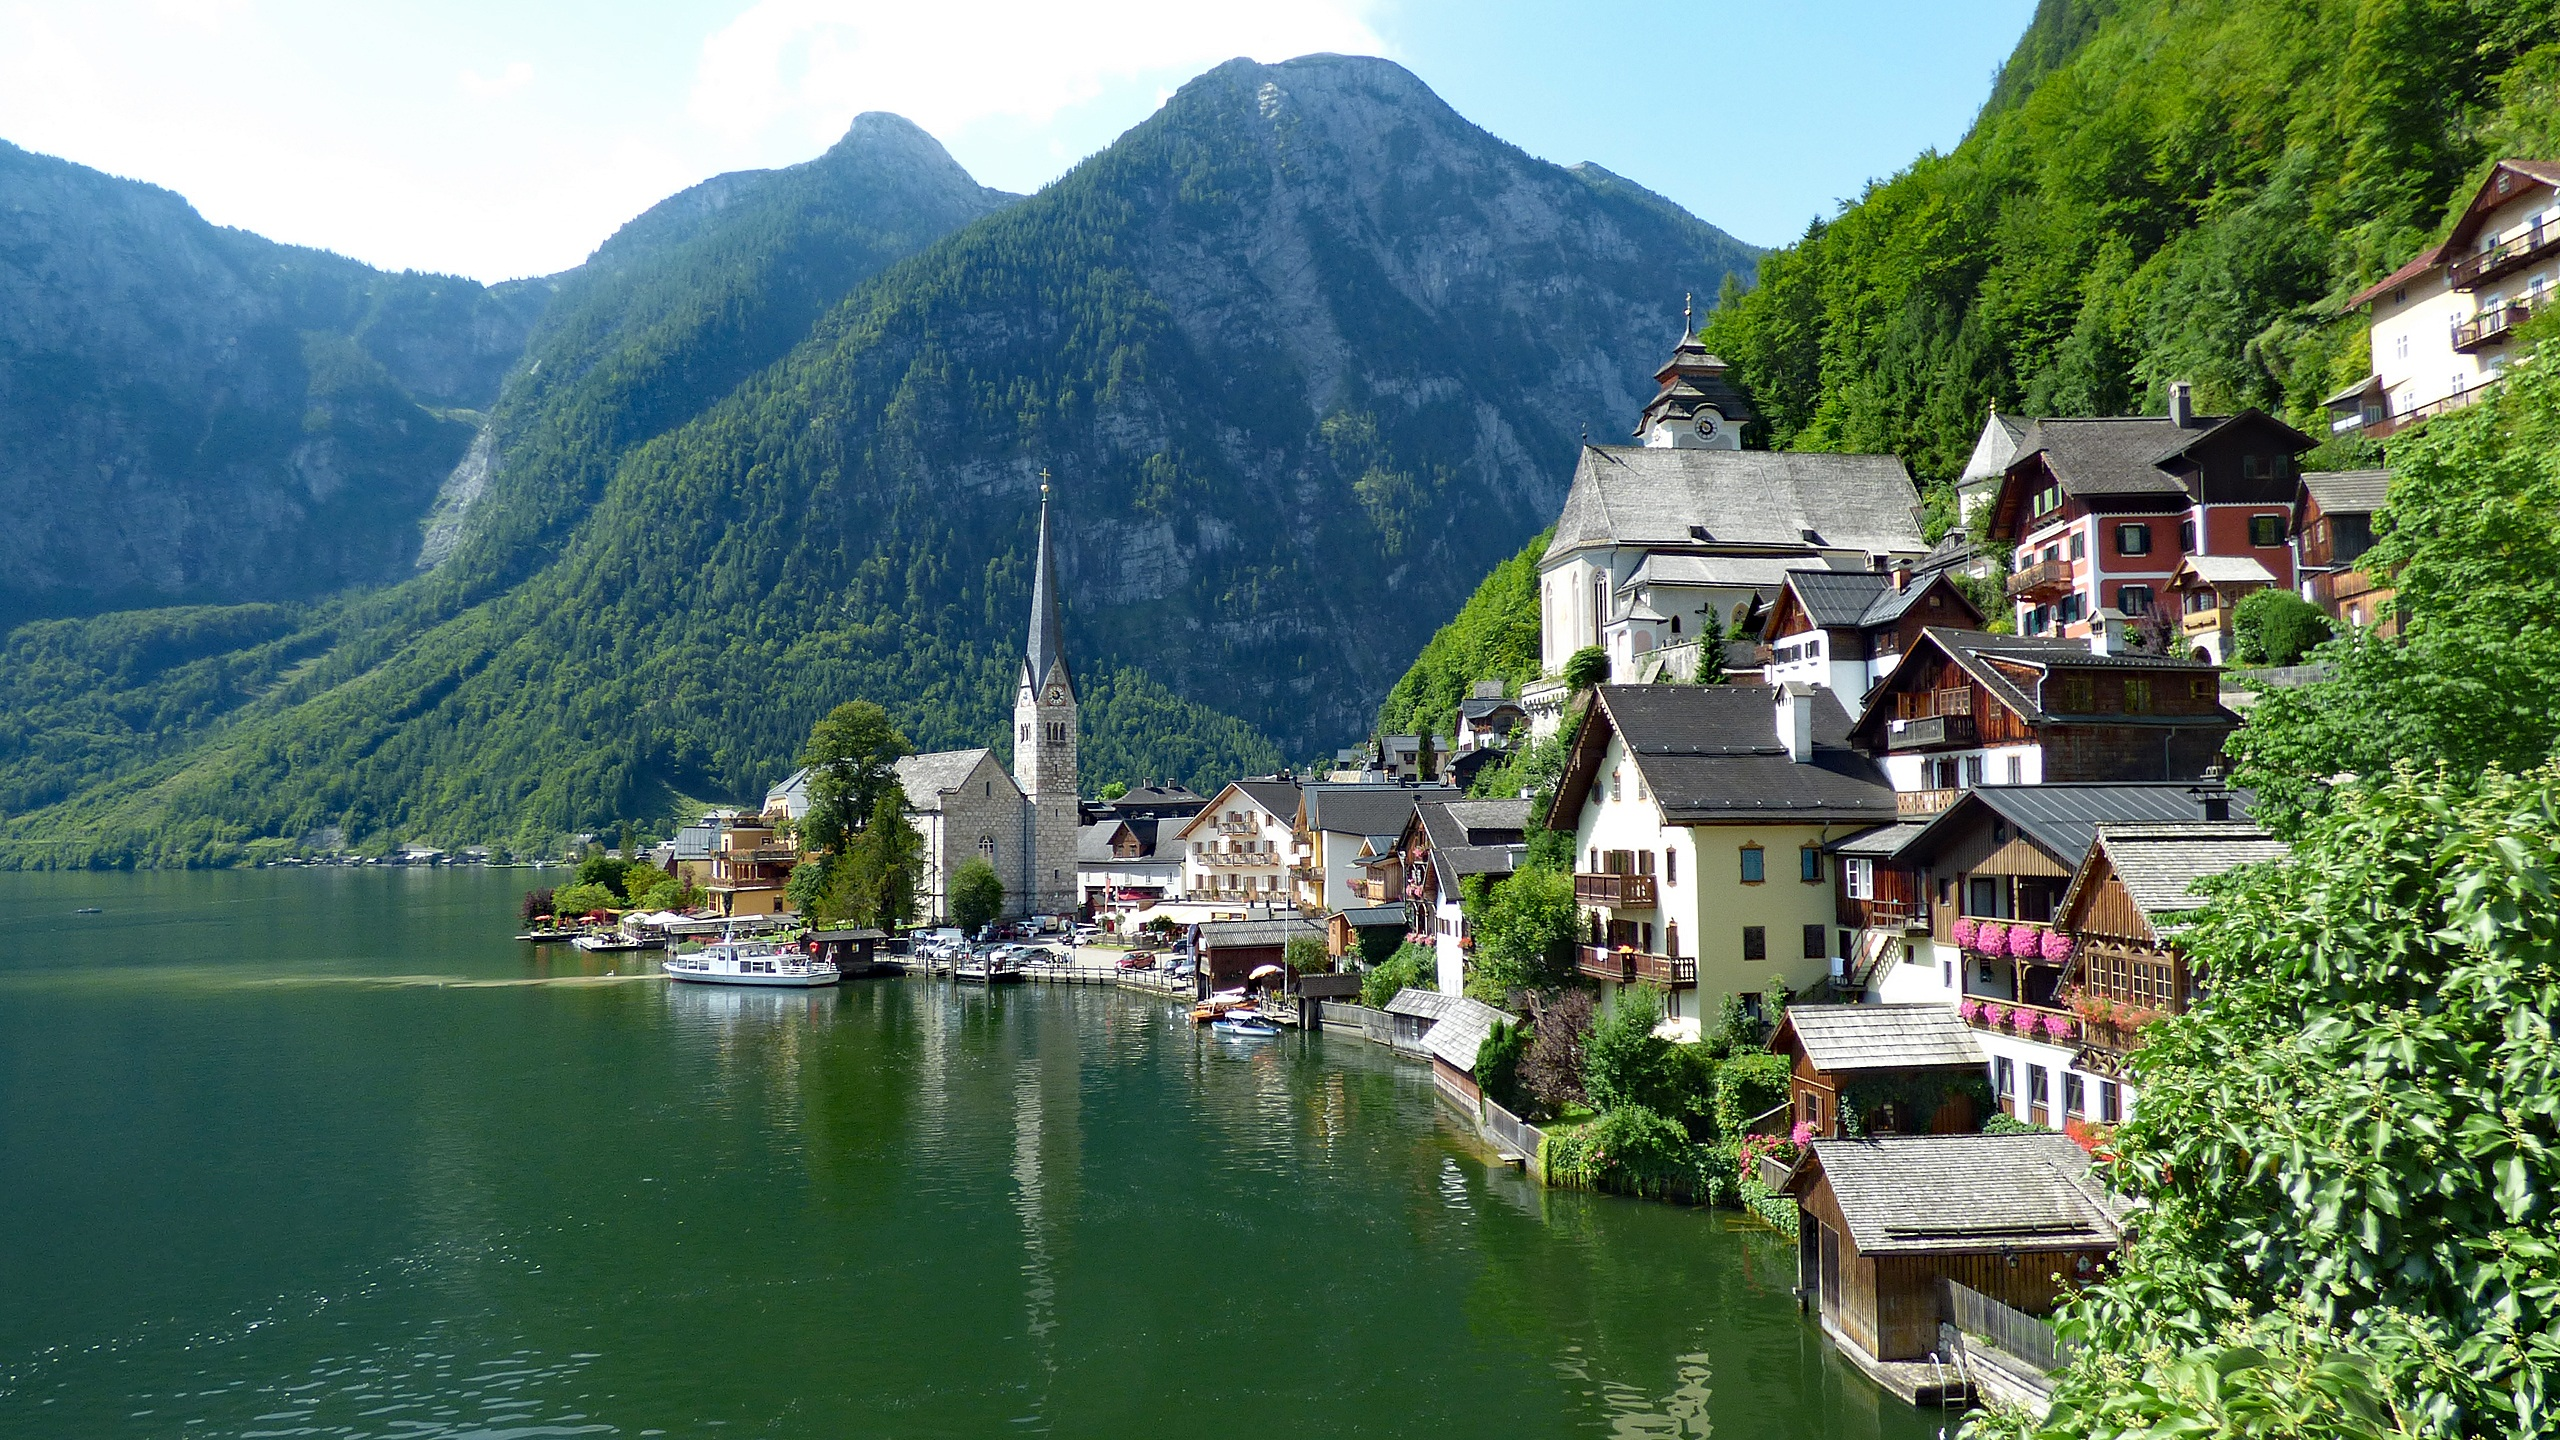 Hallstatt Austria Húsavík Lake Constance Switzerland Castle Combe village England travel picturesque cute Appenzel